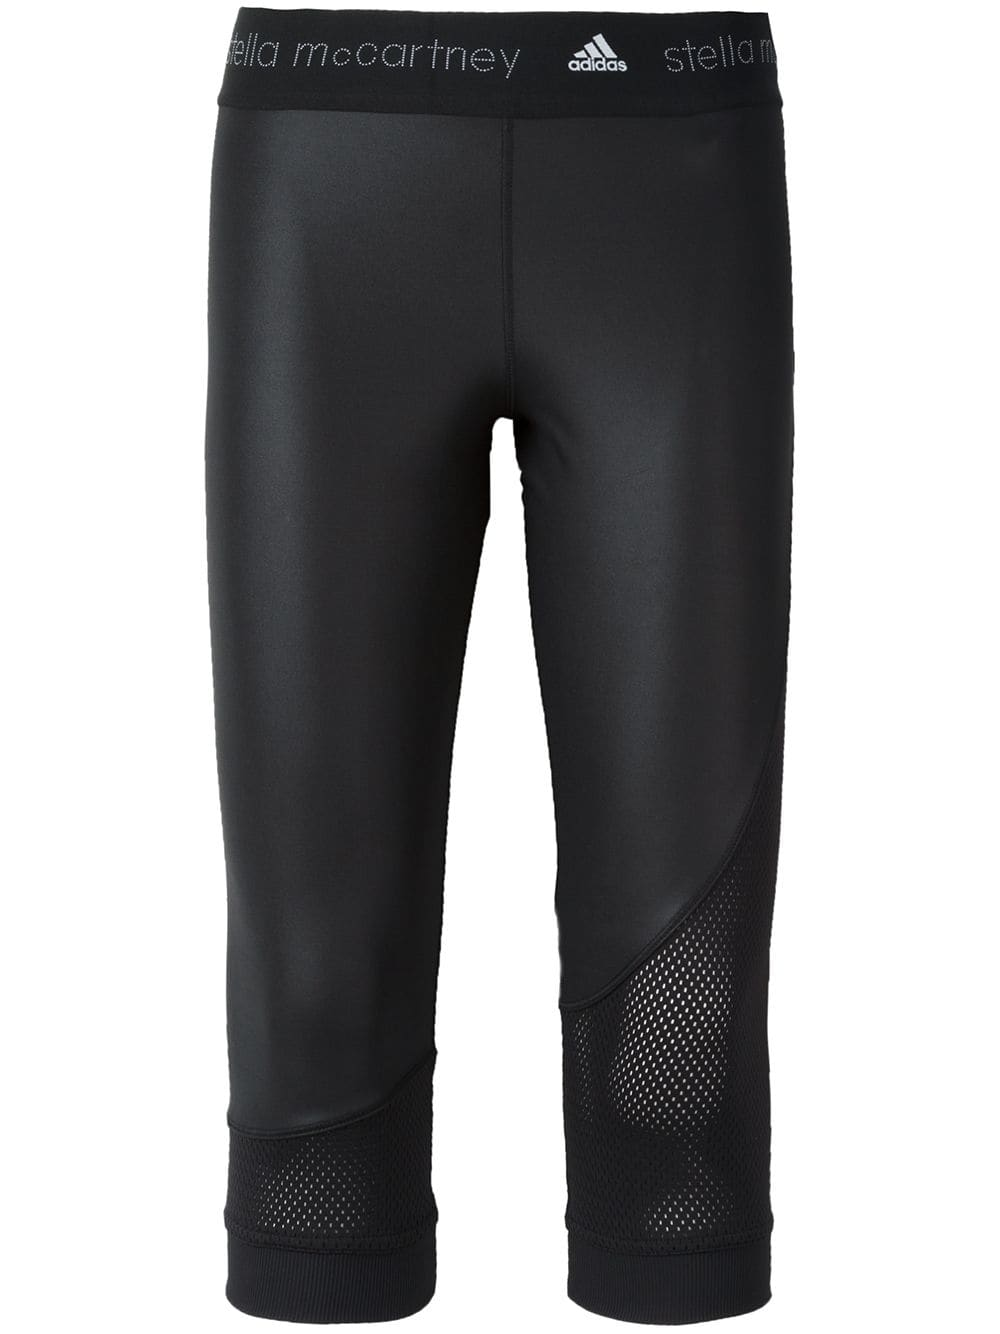 Women Stella McCartney Training Tight 3/4 Pants Black Regular S99055